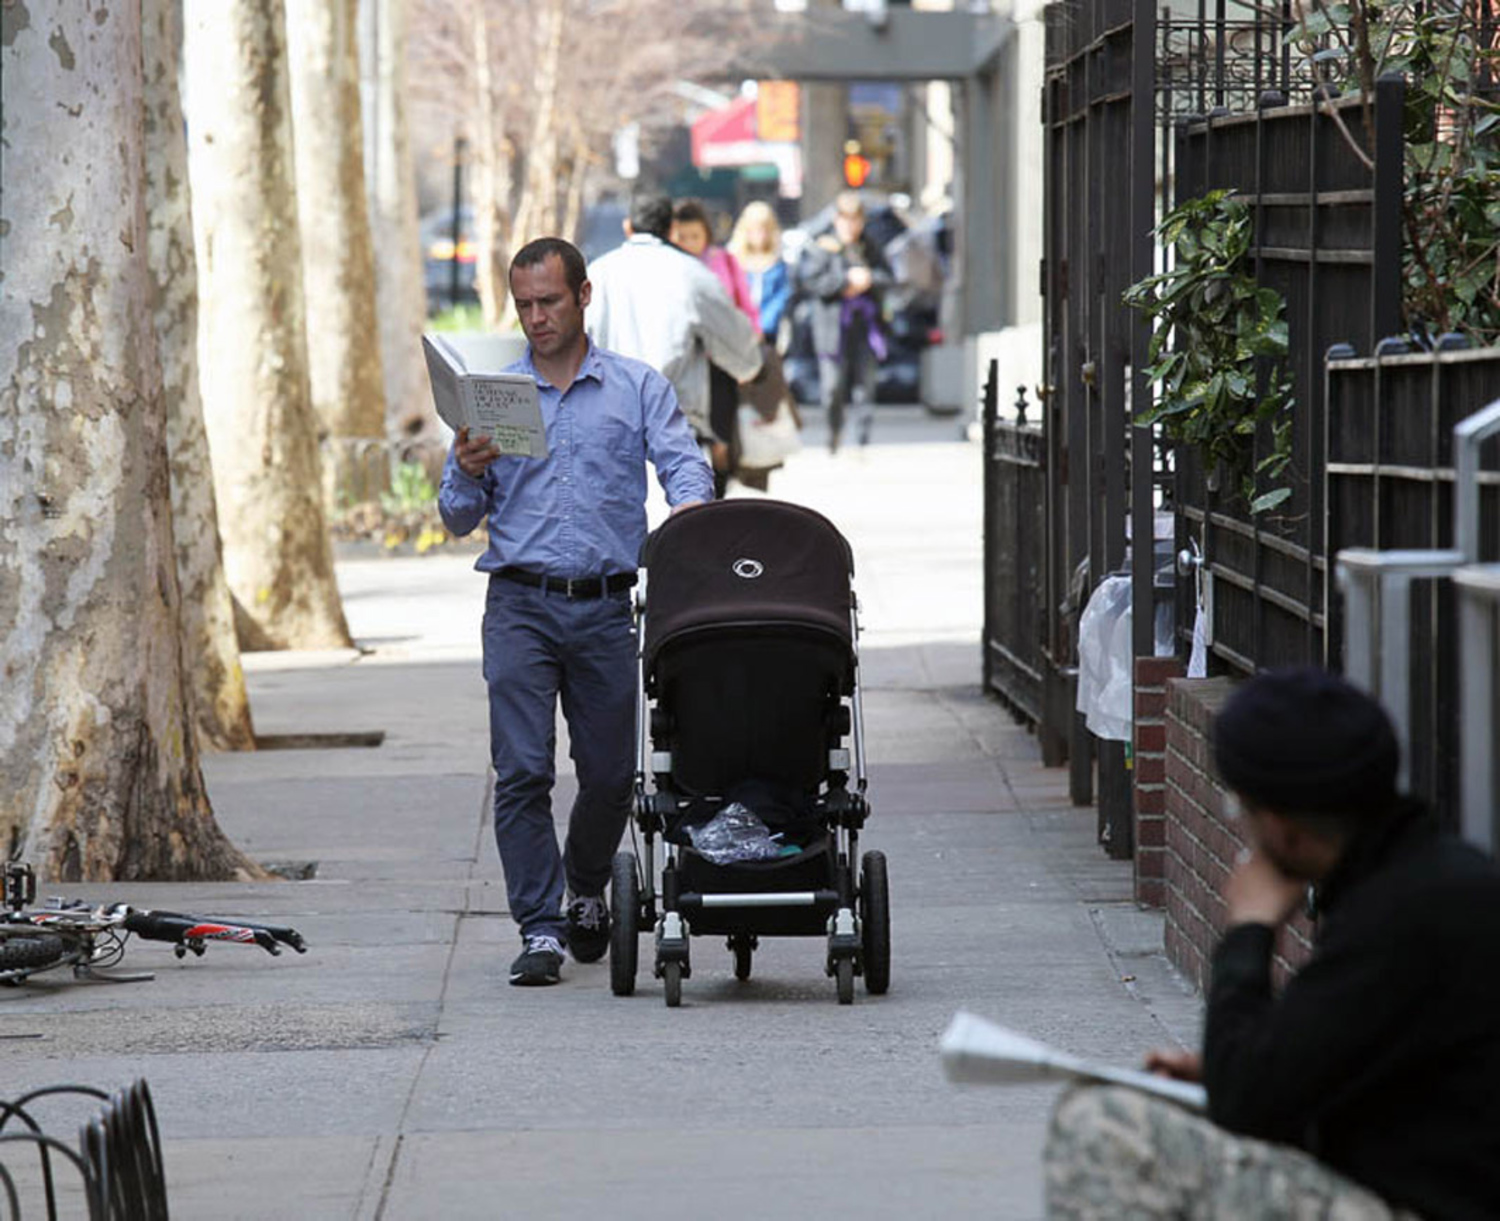 Man with stroller, 12th St., March 12, 2012.